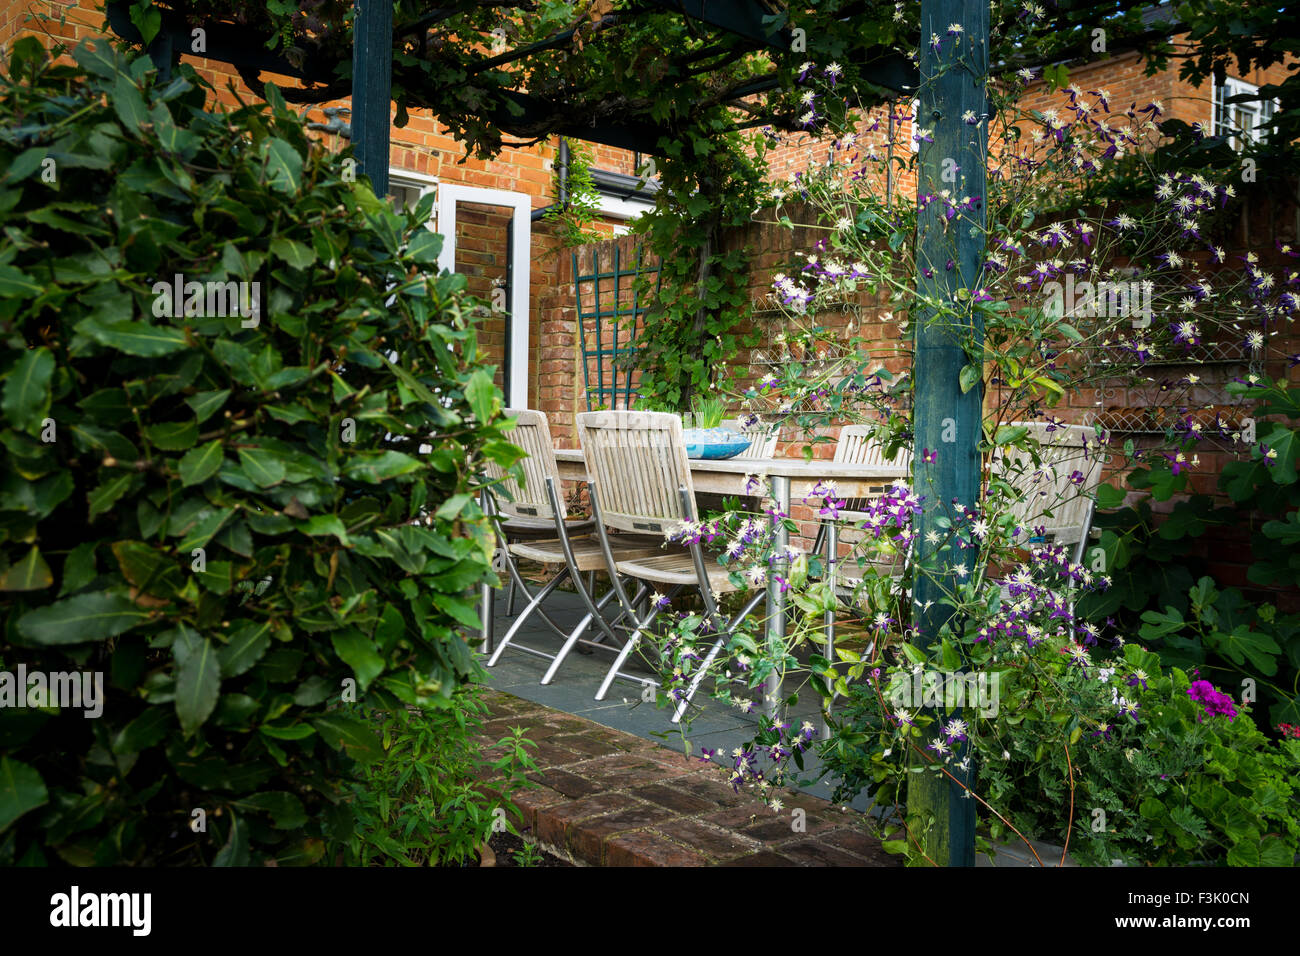 A Table And Chairs In The Shade Of A Vine Covered Pergola In An English  Country Garden.